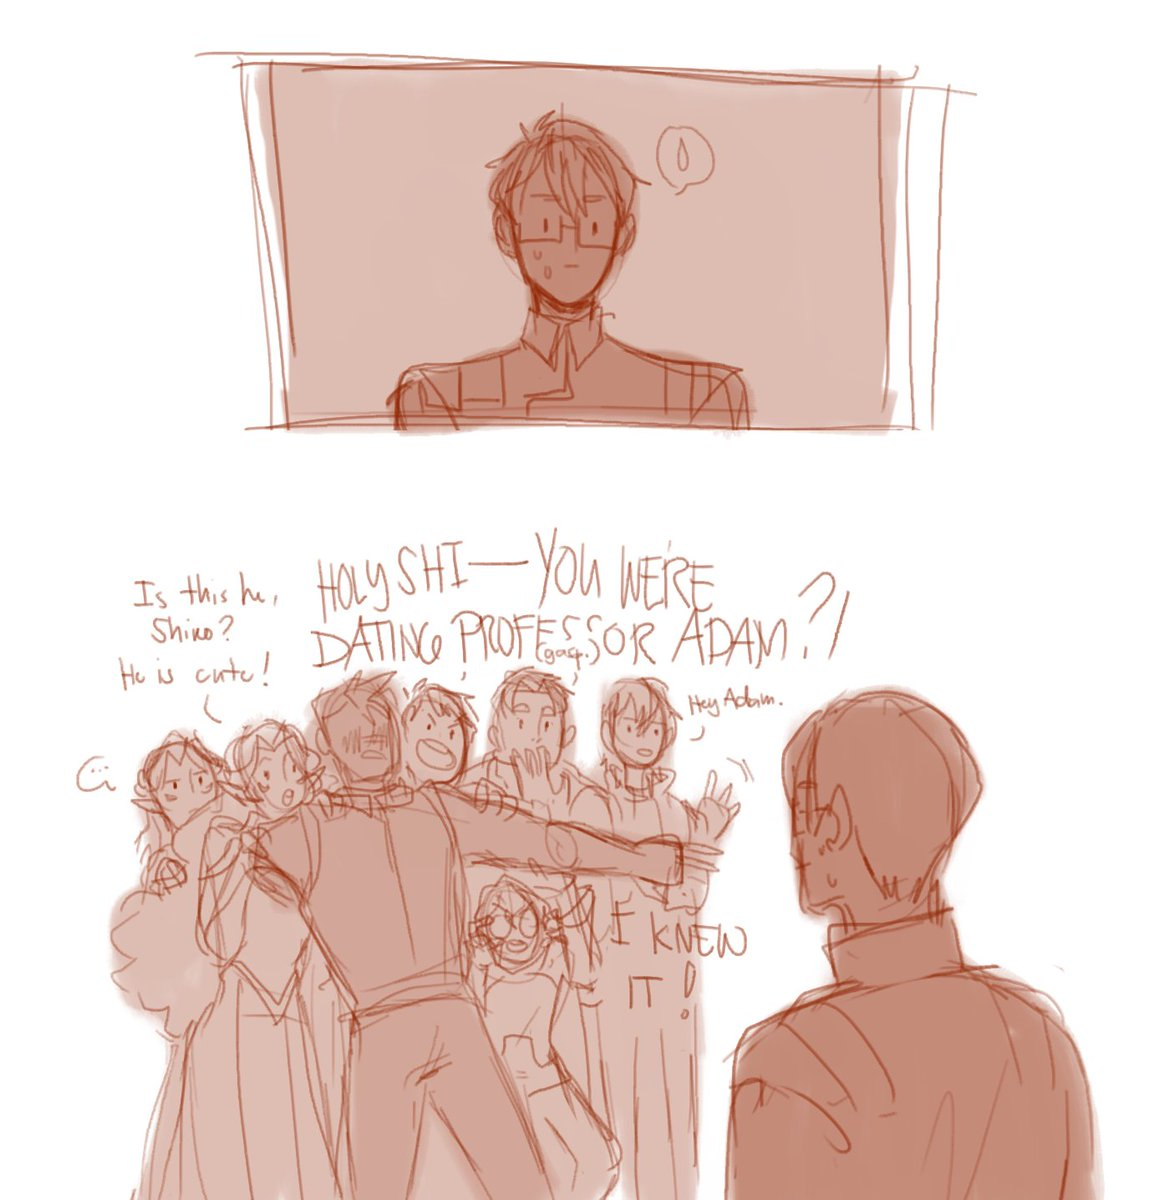 everybody stay cool. #adashi #shadam<br>http://pic.twitter.com/ByJaakcCWk